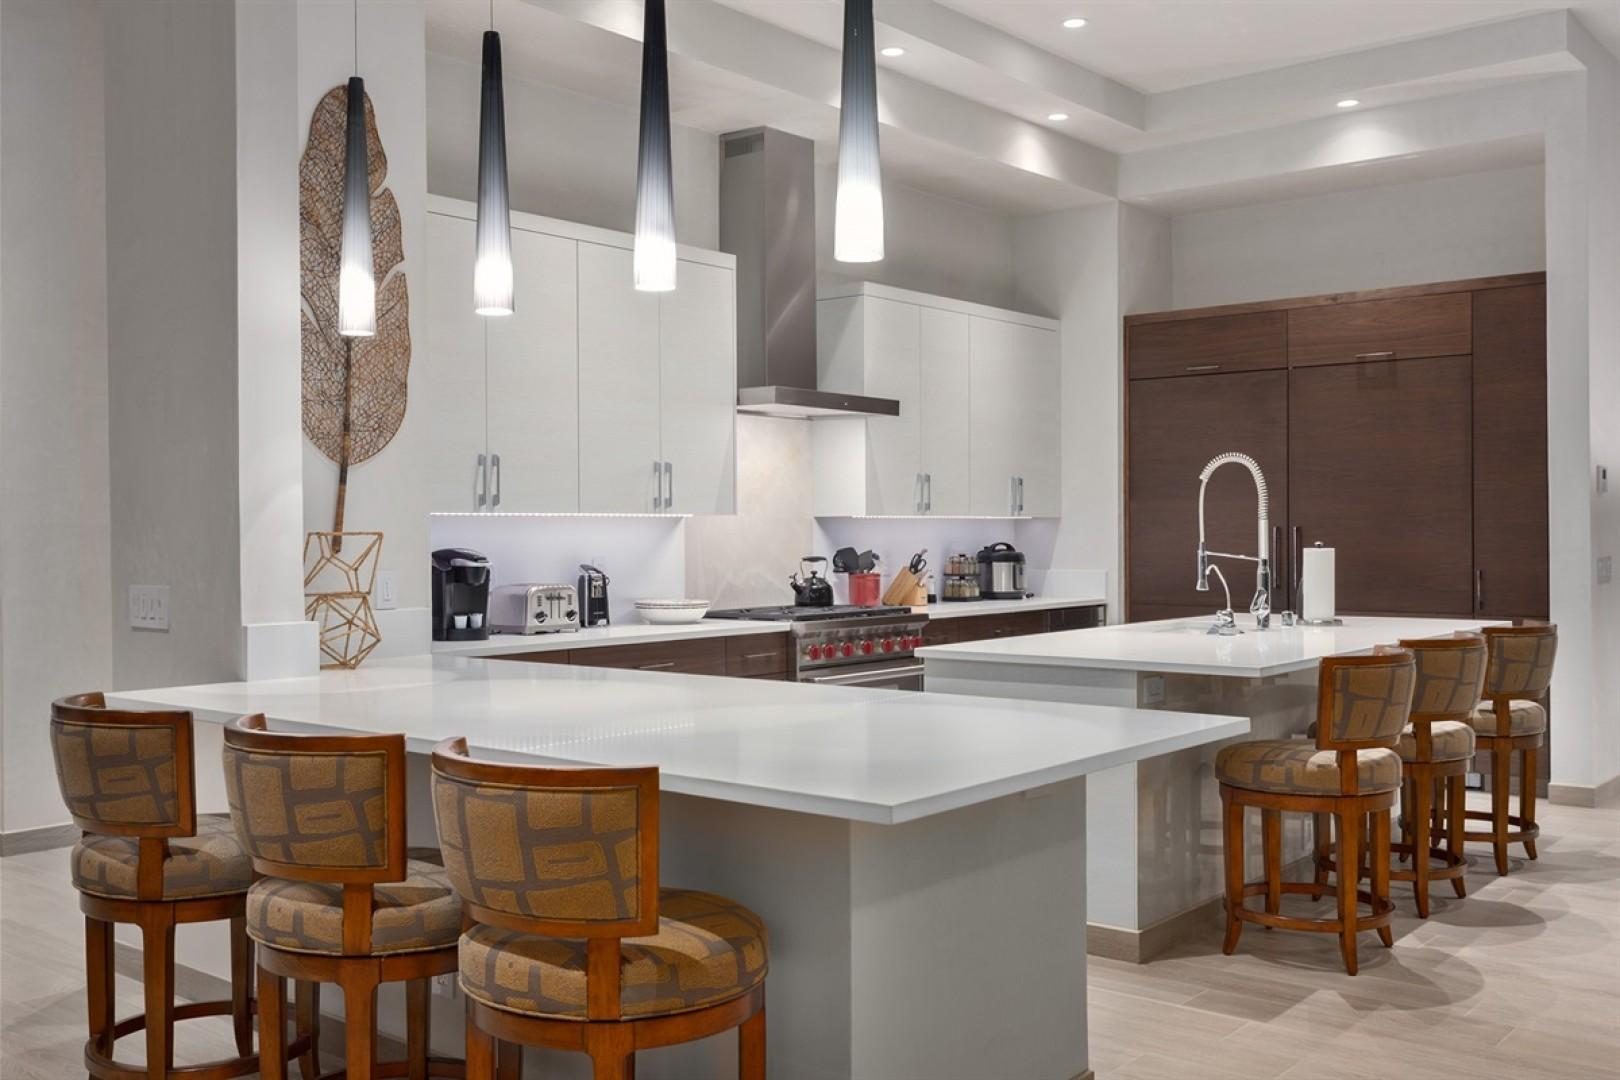 Gourmet modern kitchen with soaring ceilings.